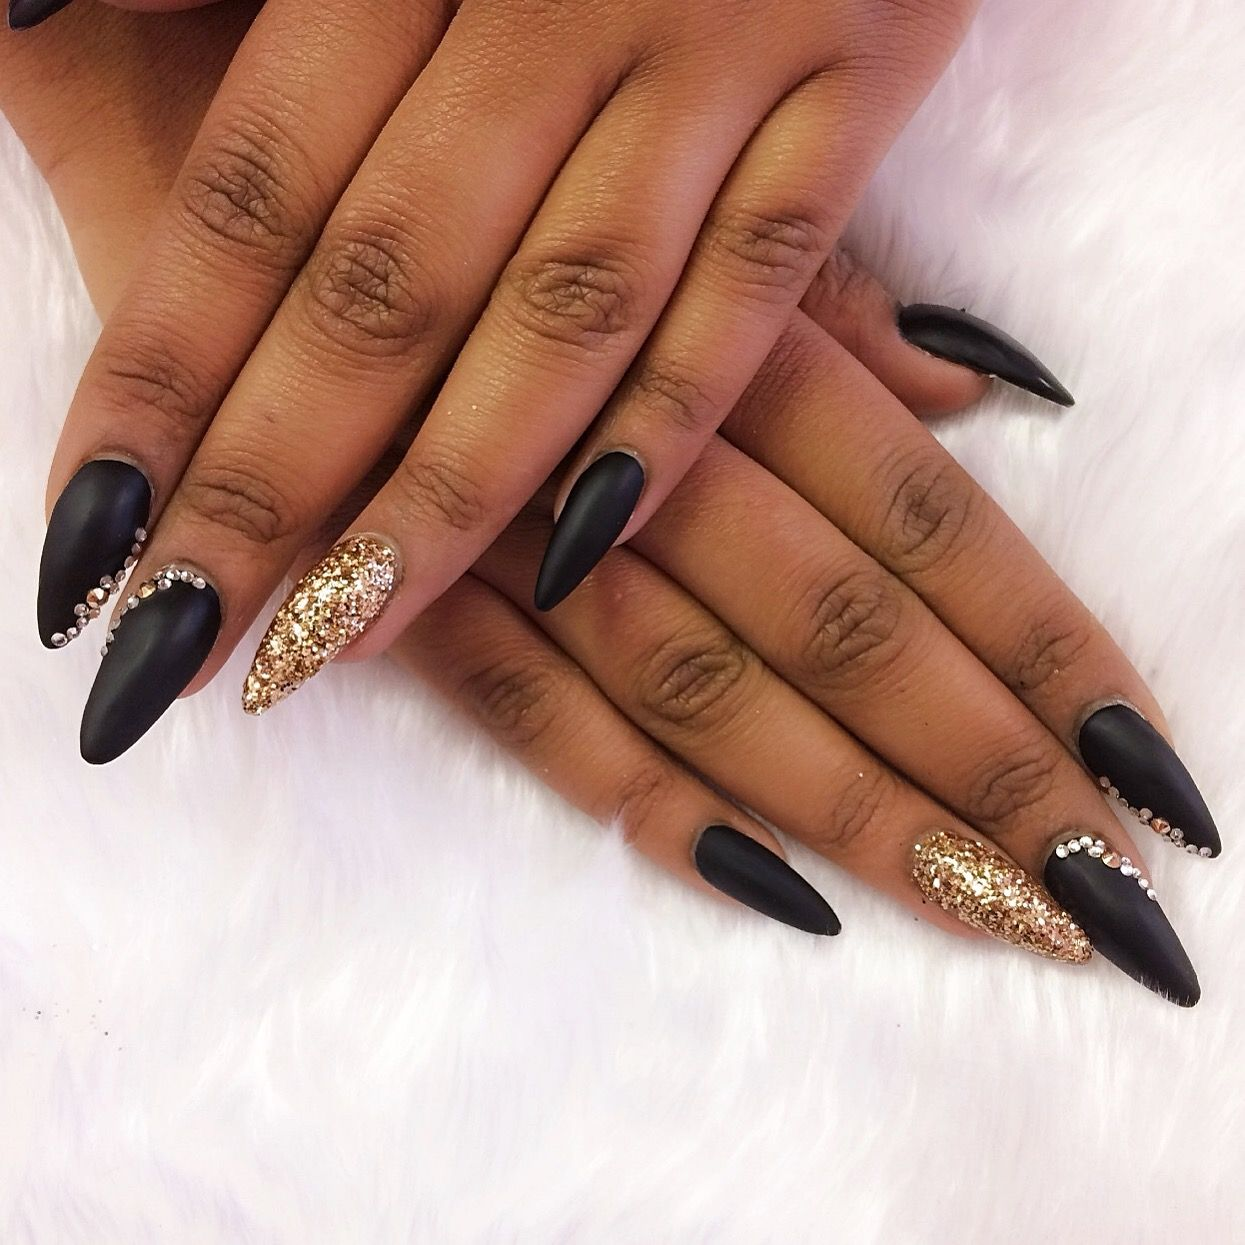 stiletto nails in matte black with gold glitter and